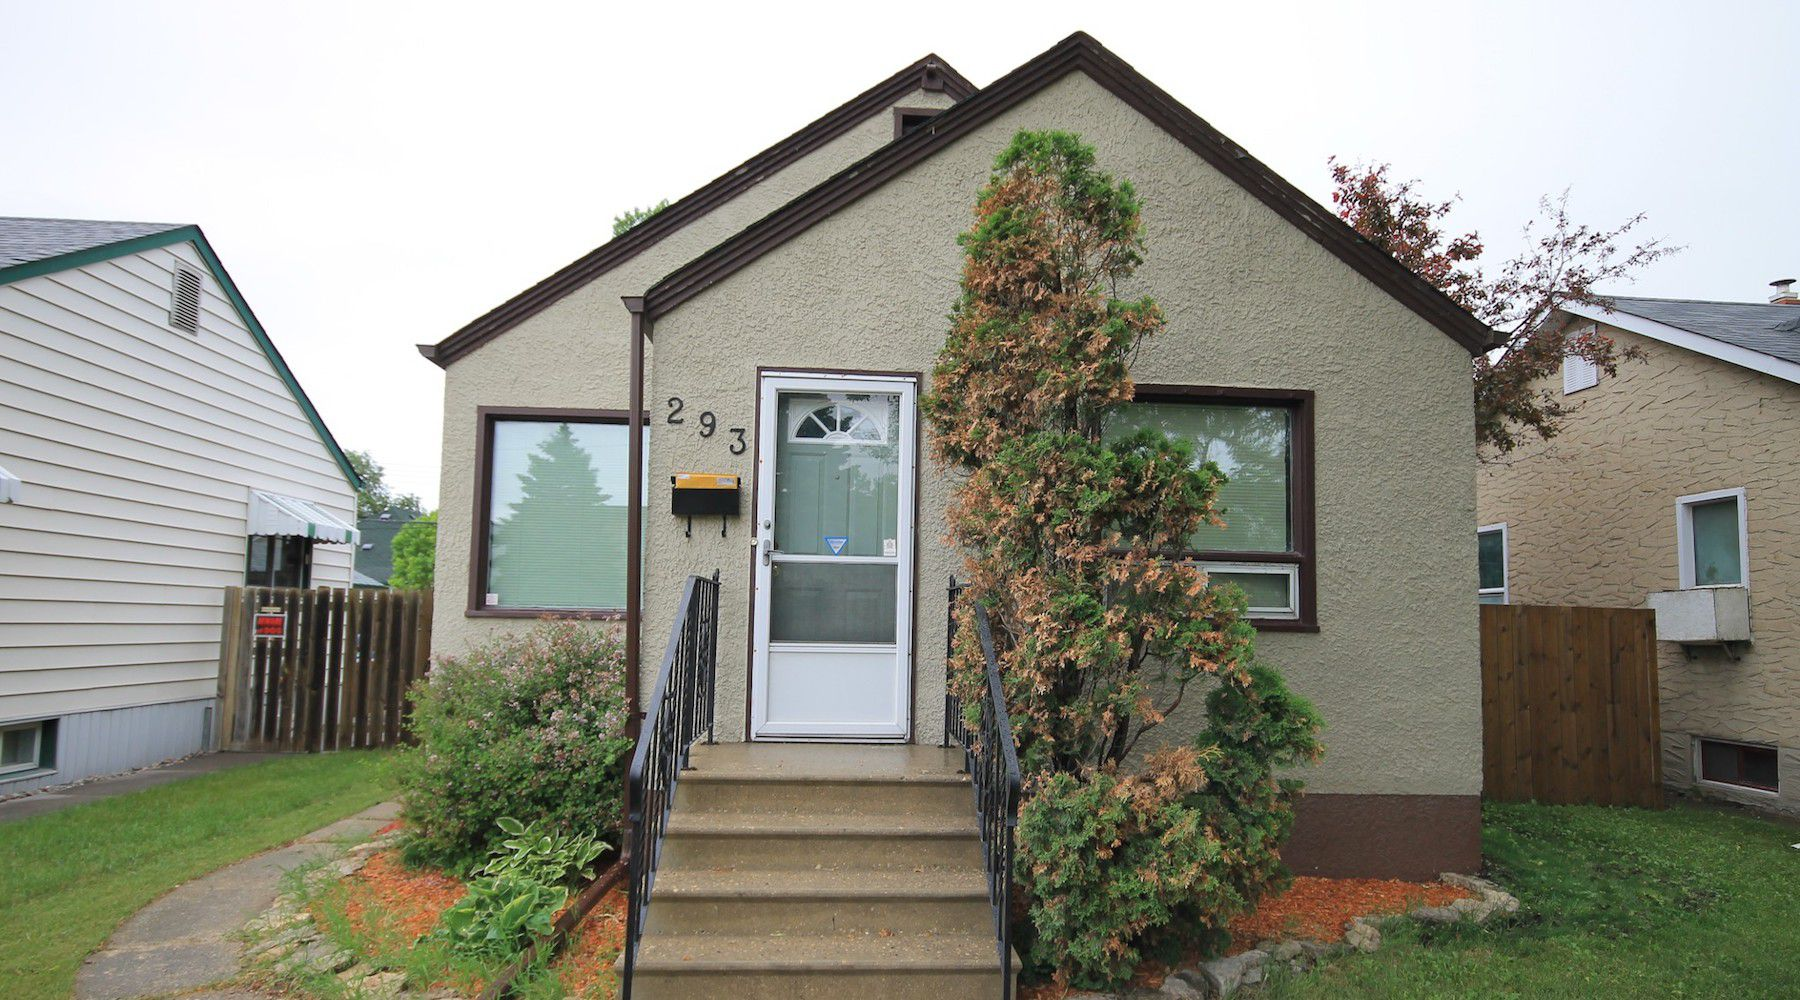 Main Photo: 293 St. Mary's Road in Winnipeg: Norwood Residential for sale (2B)  : MLS®# 1815982